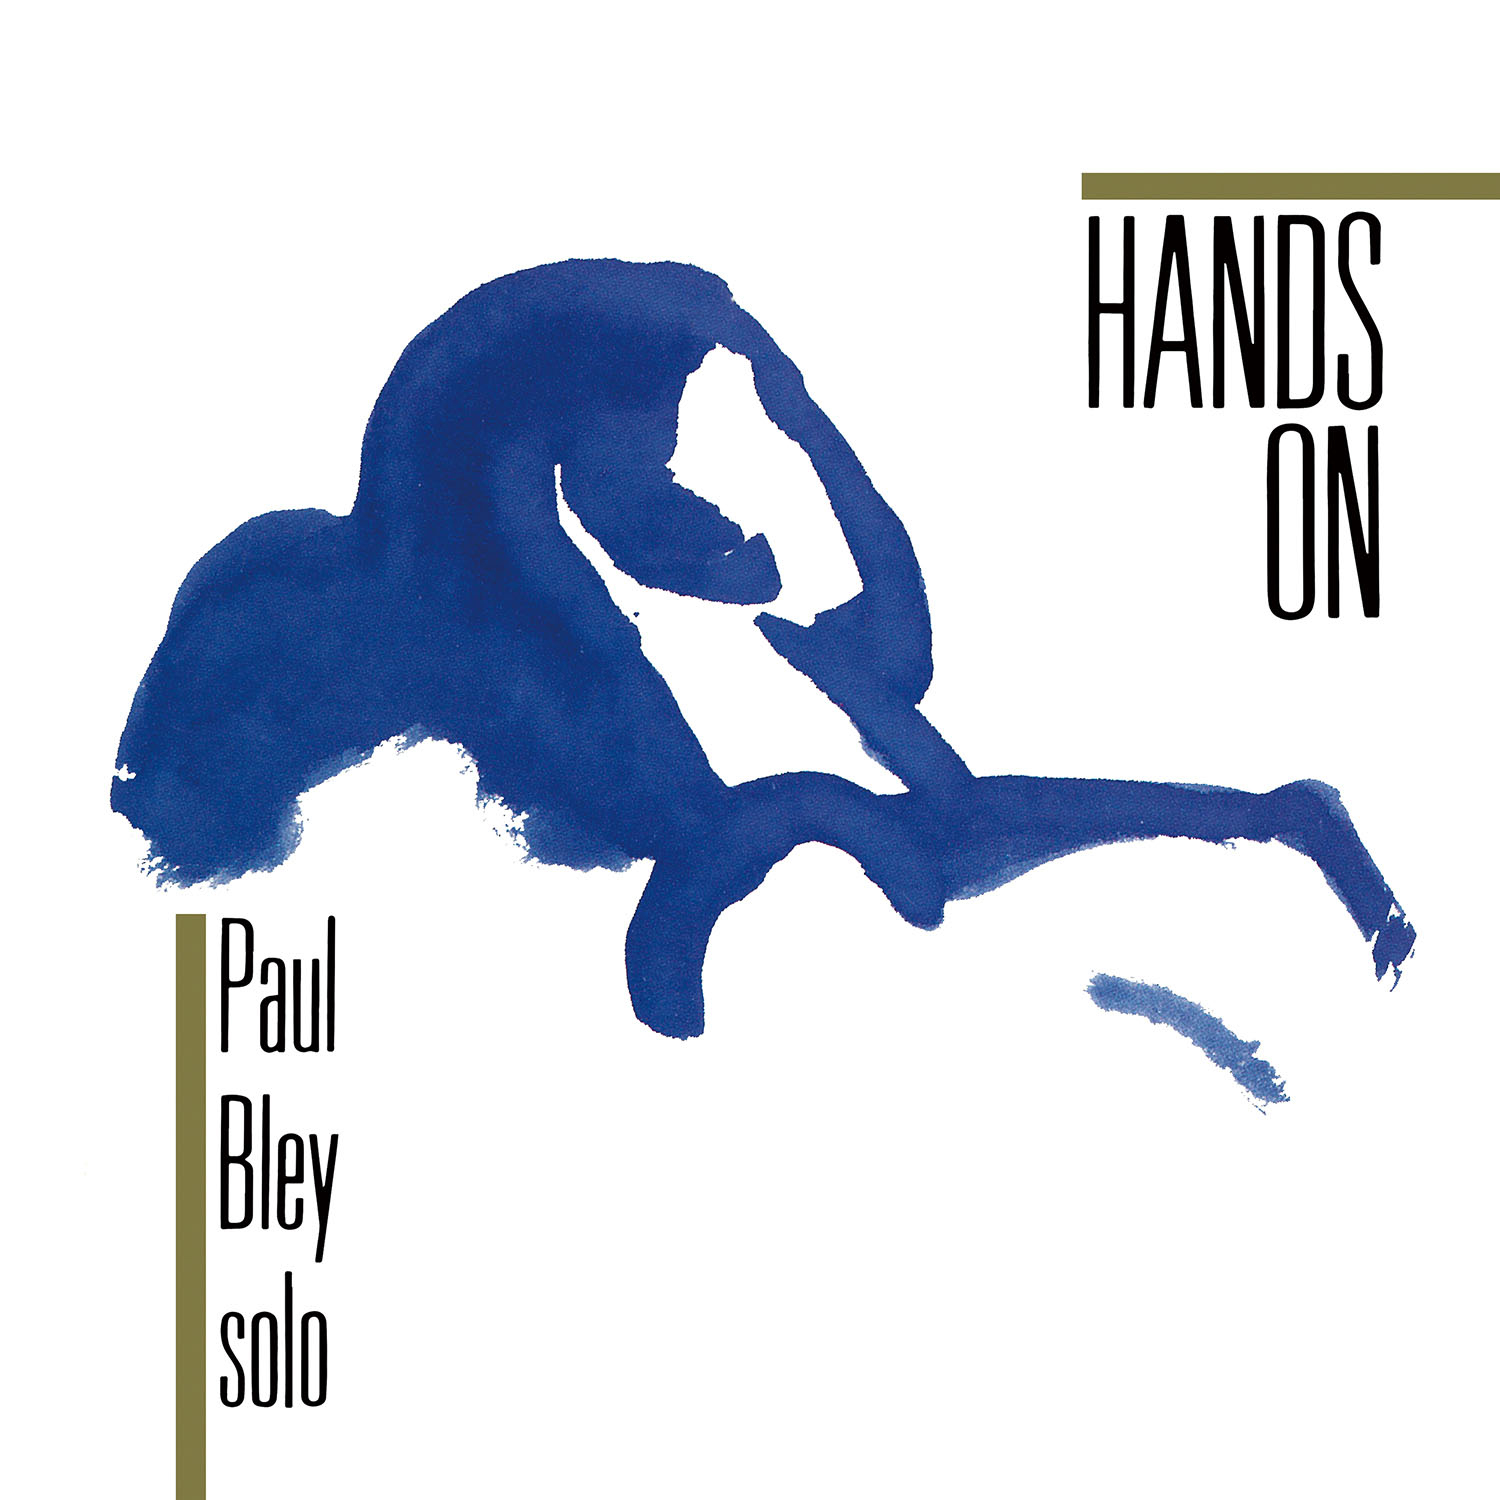 Paul Bley「Hands On」